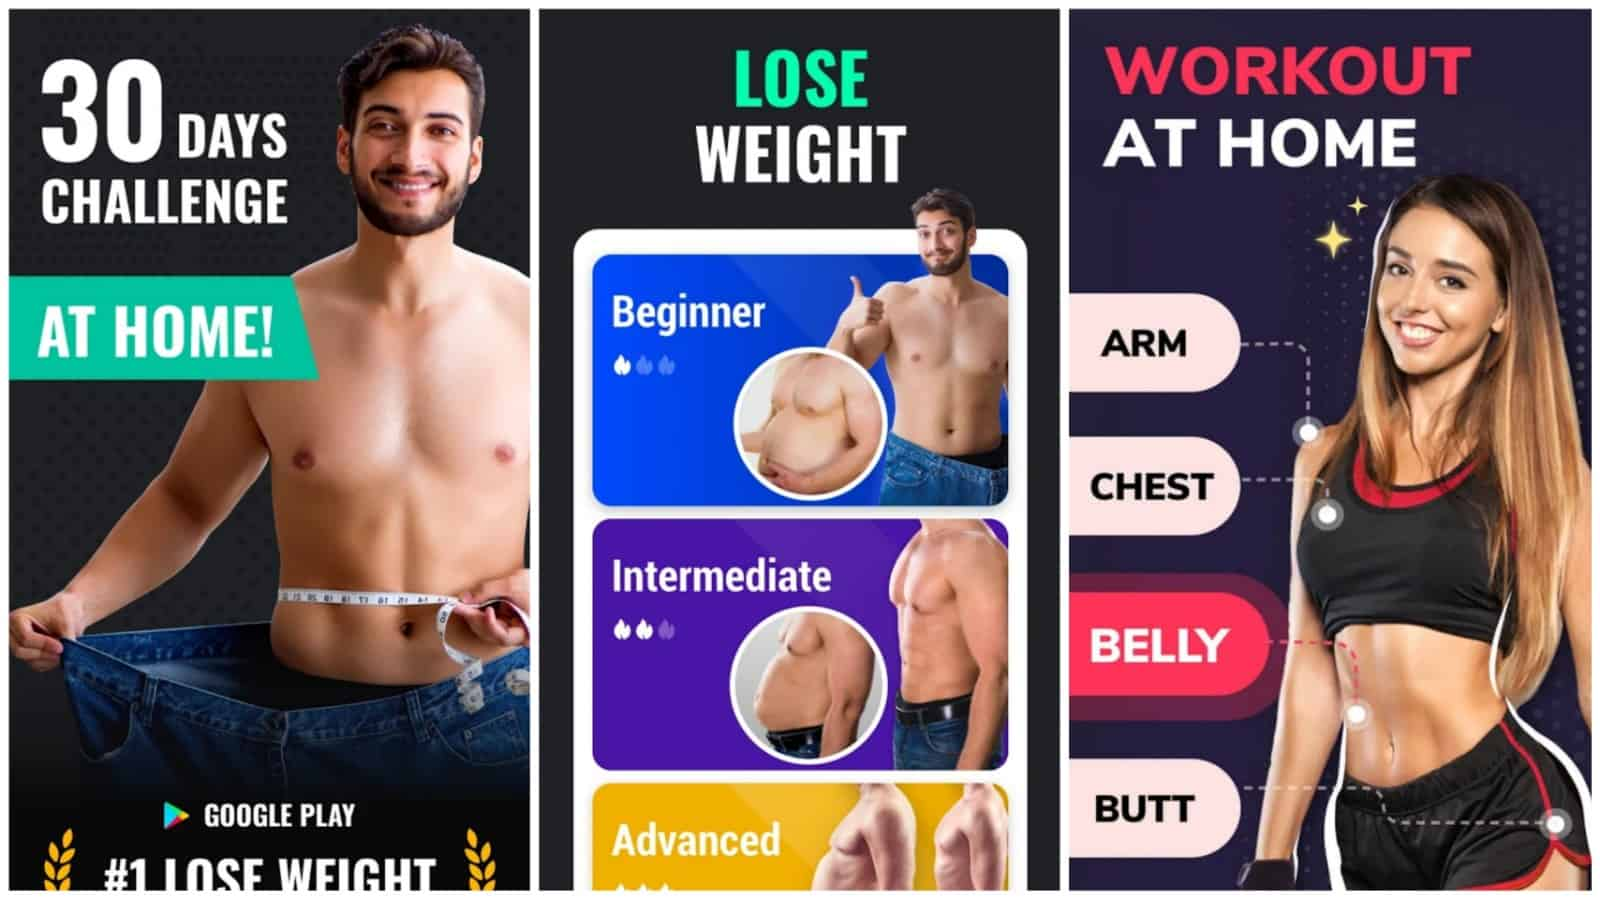 Lose Weight Leap Fitness app grid image